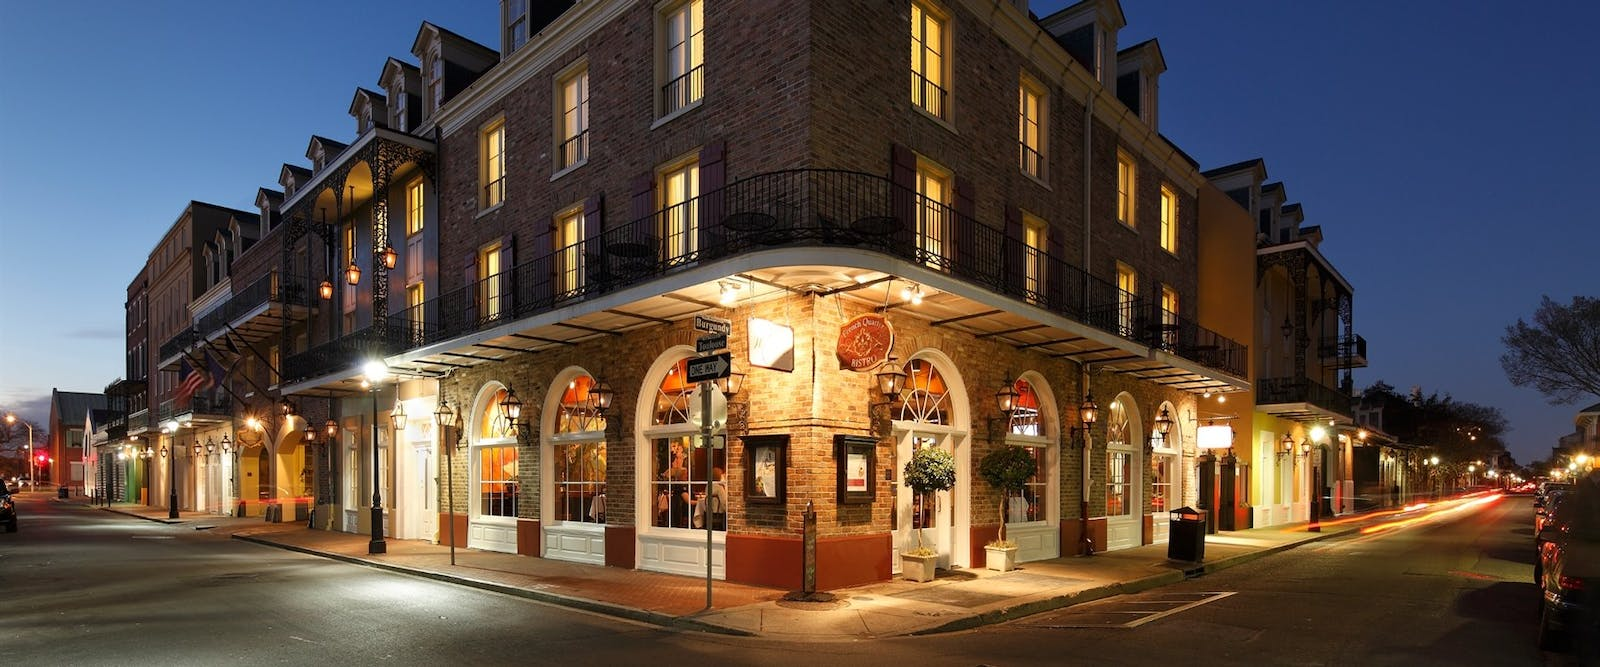 Exterior of The Maison Dupuy, New Orleans